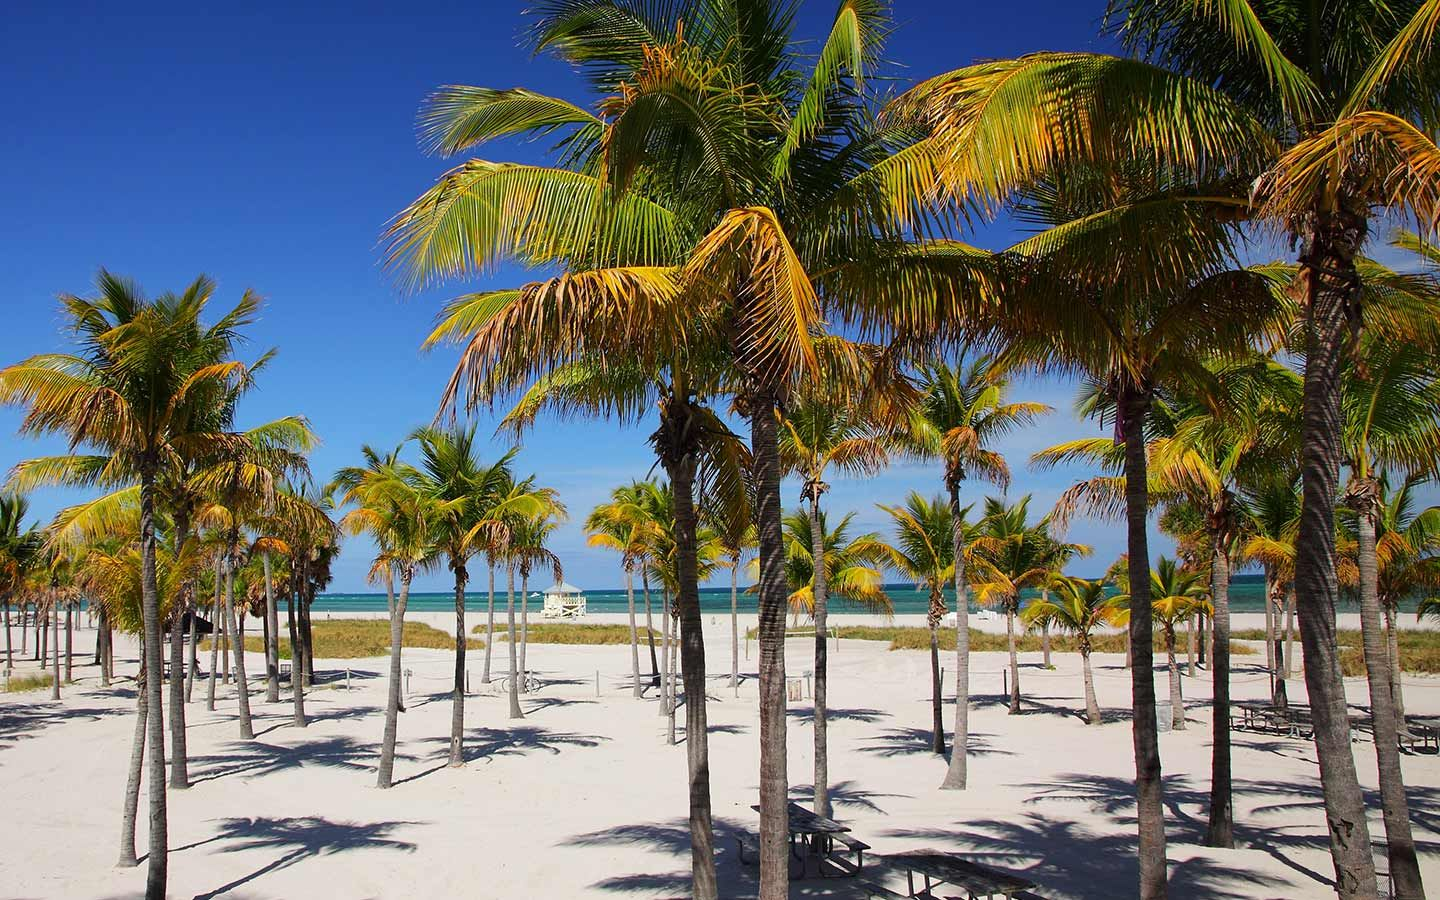 Things To Do In Key Biscayne